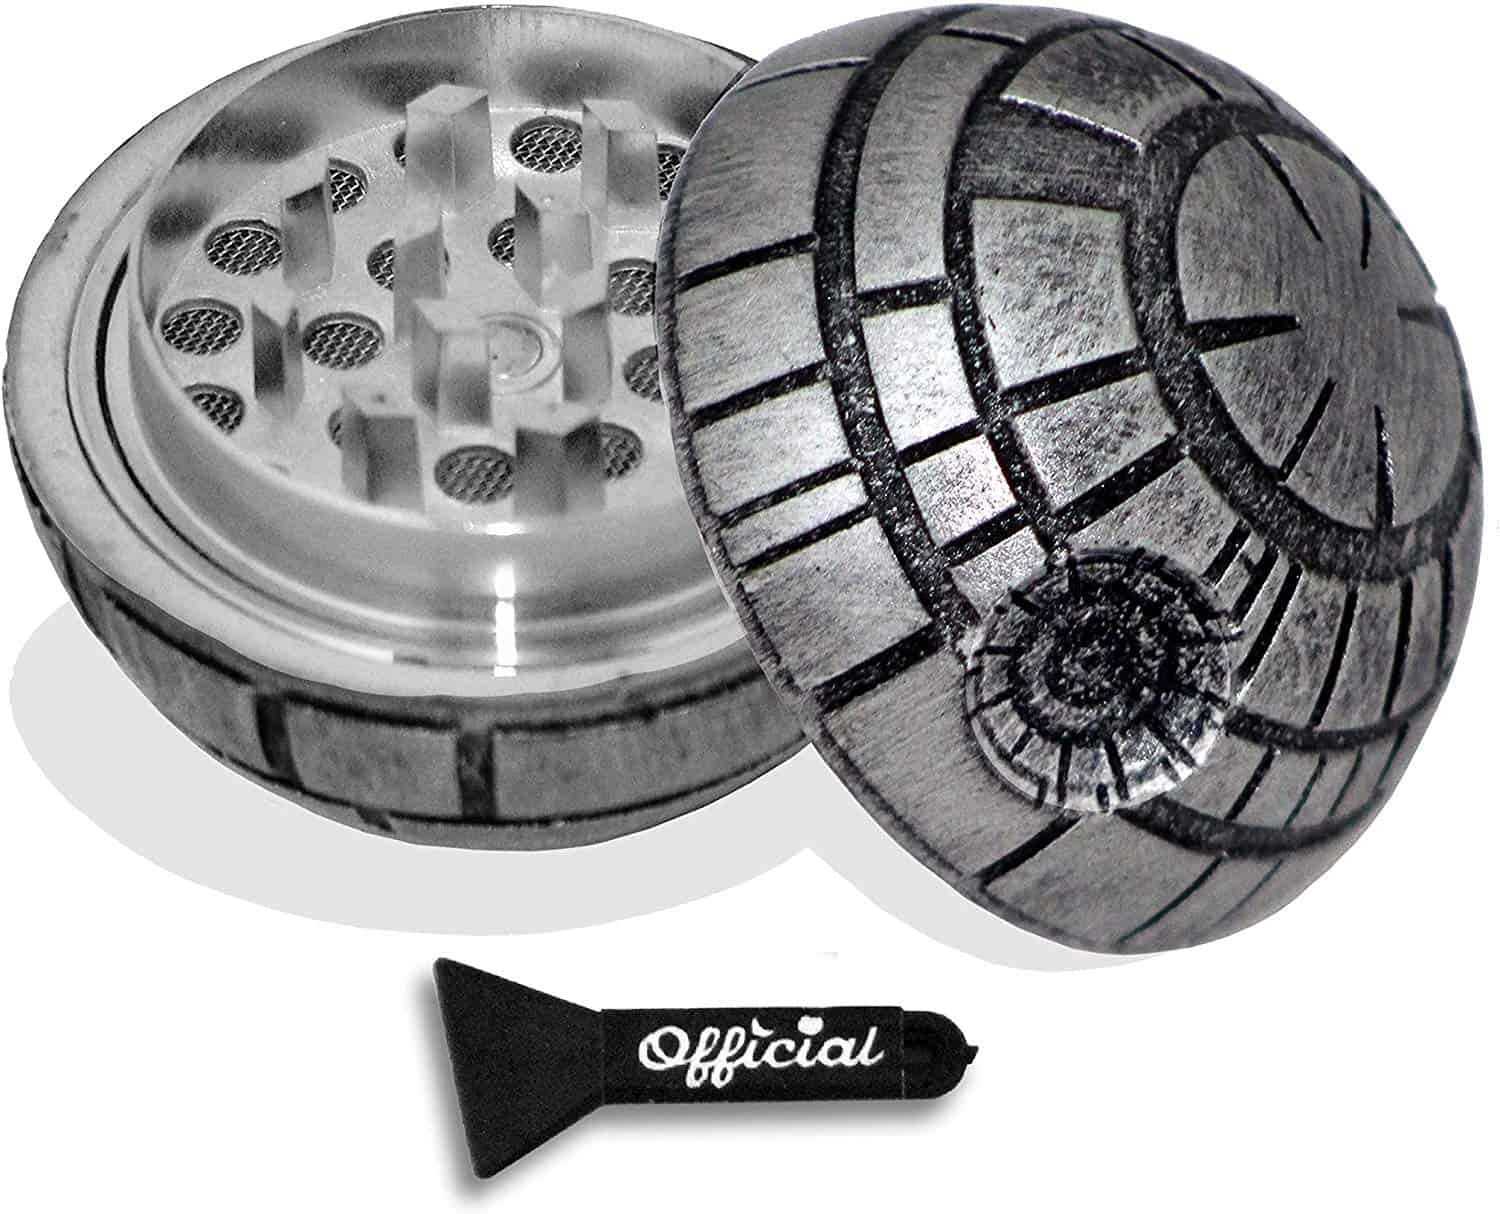 Official Death Star Herb Grinder-Star Wars Grinder